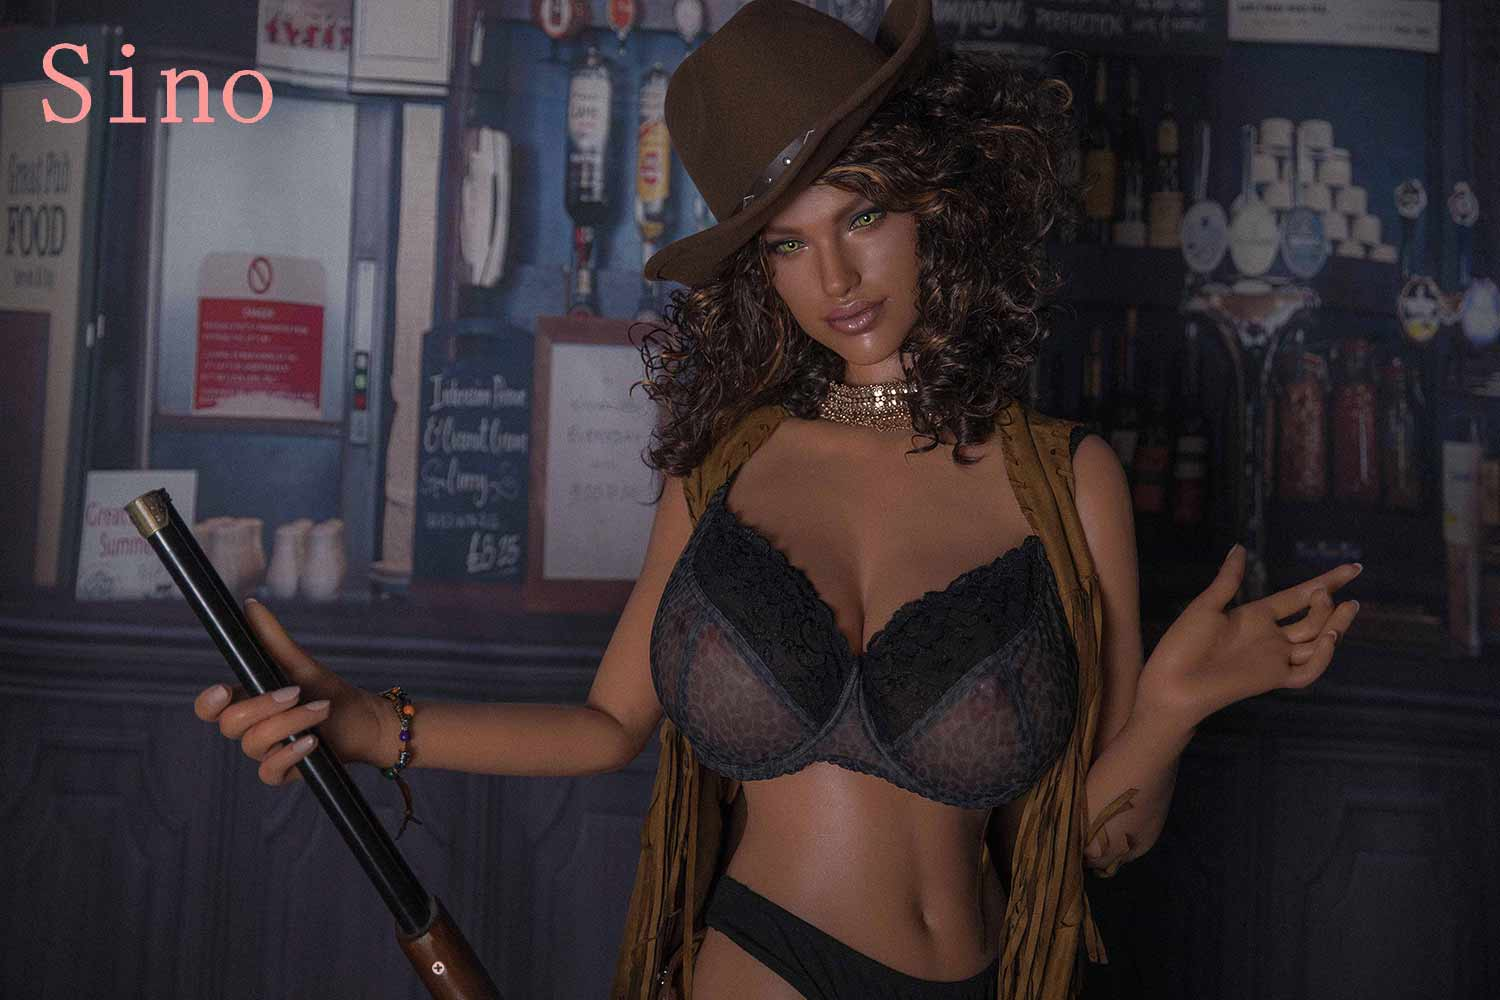 Silicone sex doll with brown hat